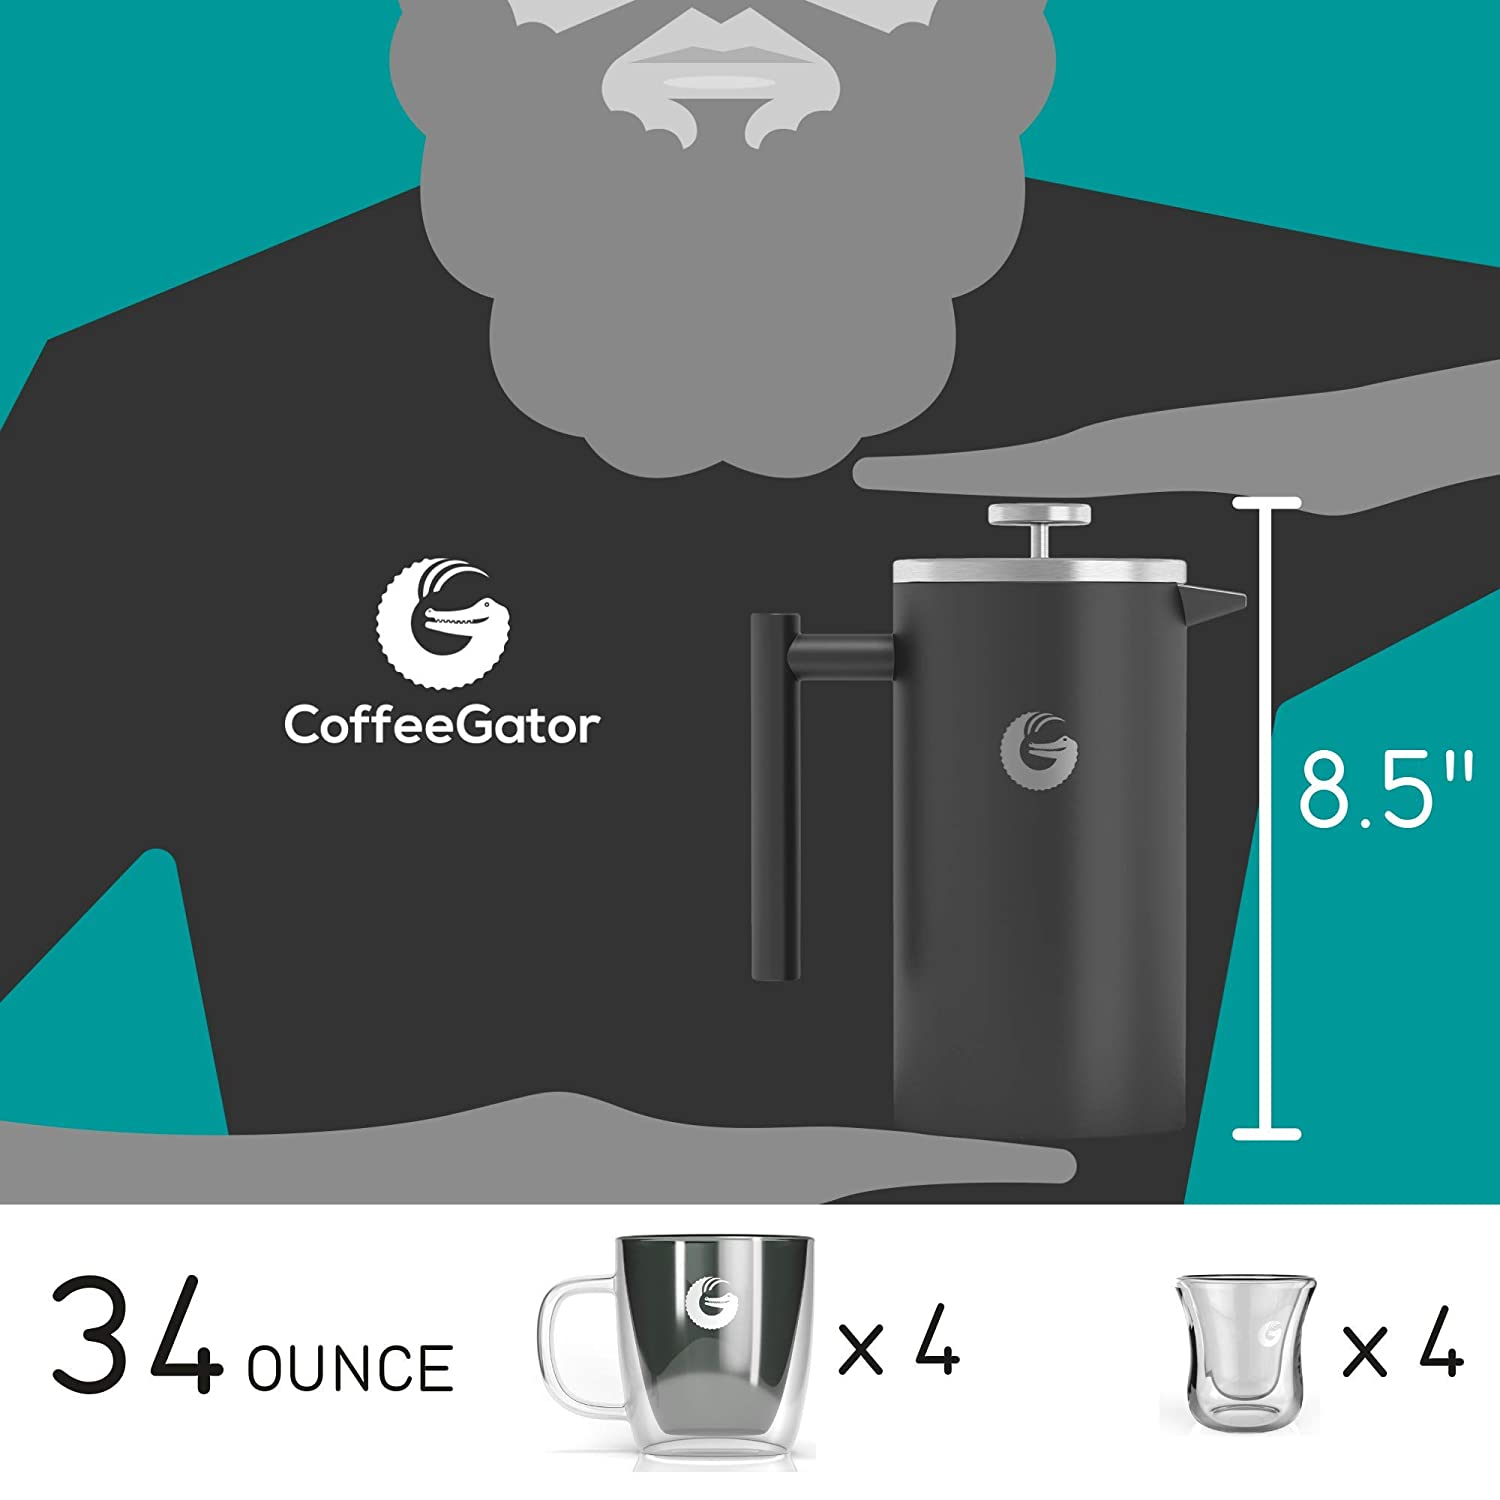 Coffee Gator French Press Coffee Maker – Less Sediment, Hotter-for-Longer Thermal Brewer – Plus Travel Jar – Large Capacity, Double-Wall Insulated Stainless Steel – 34 Ounce – Gray